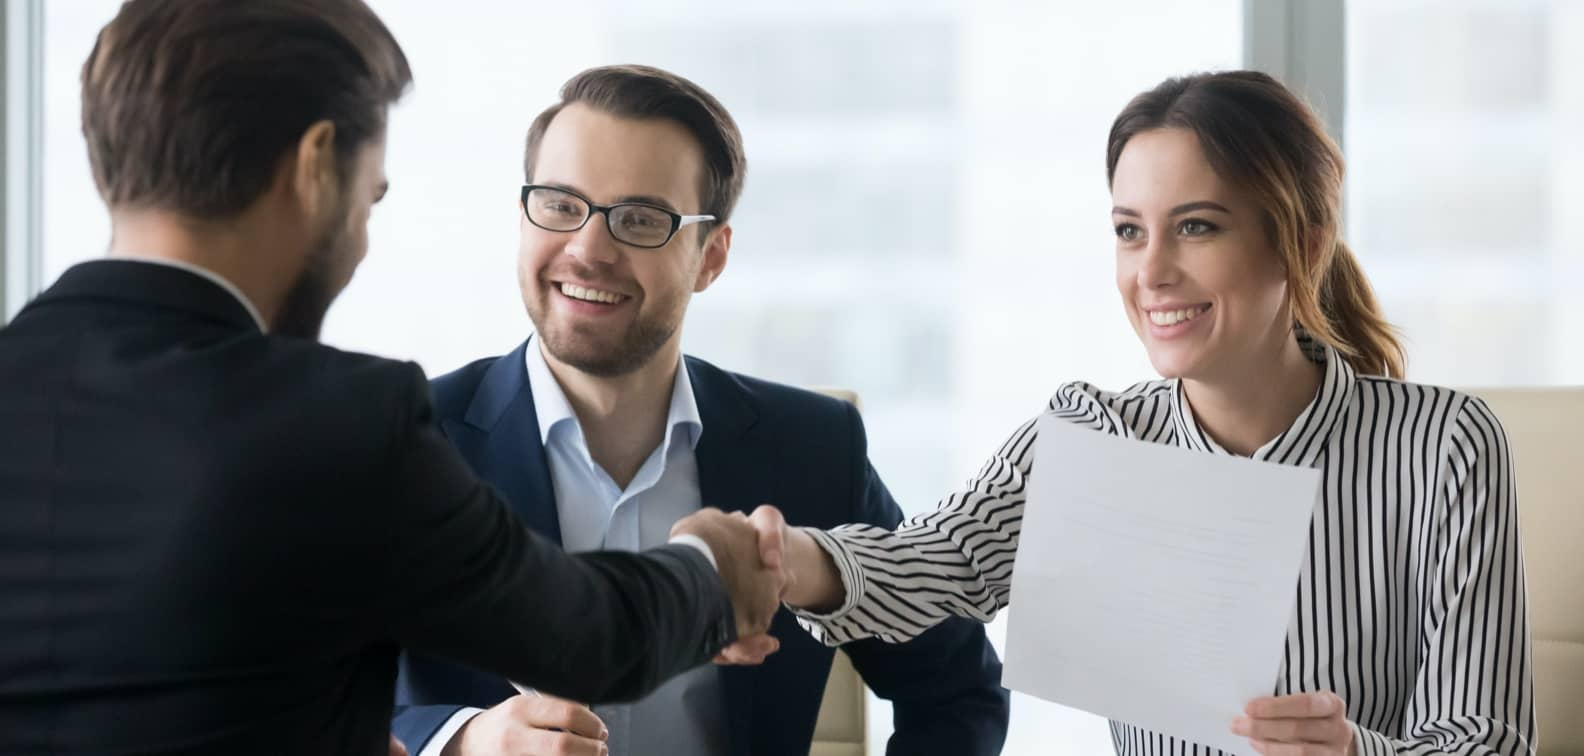 SME owner shakes hands with smiling female investor